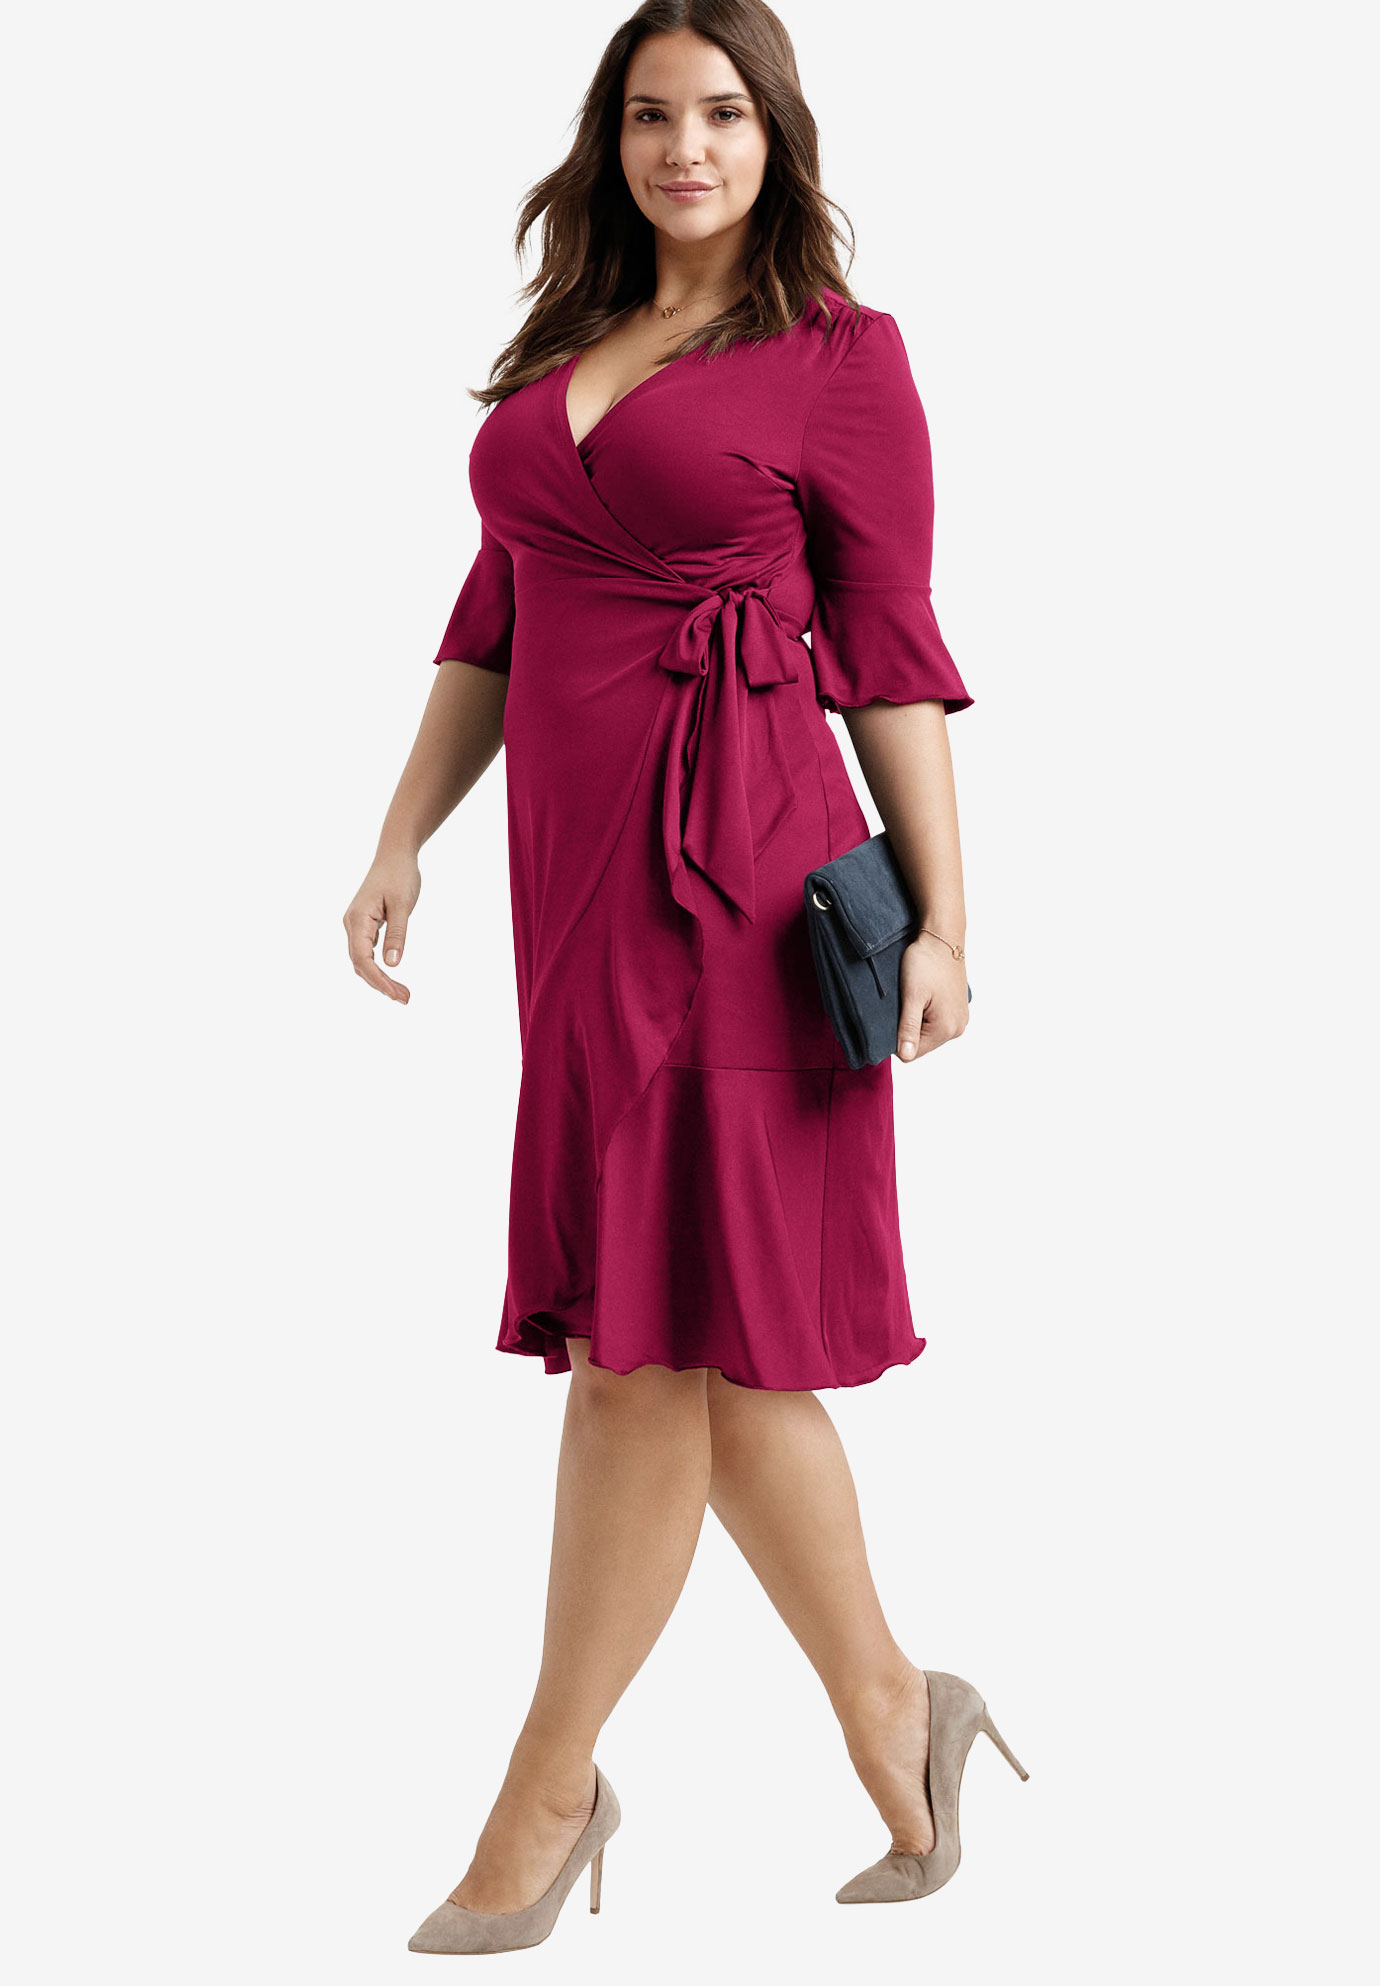 Ruffle Trim Wrap Dress By Ellos 174 Plus Size Special